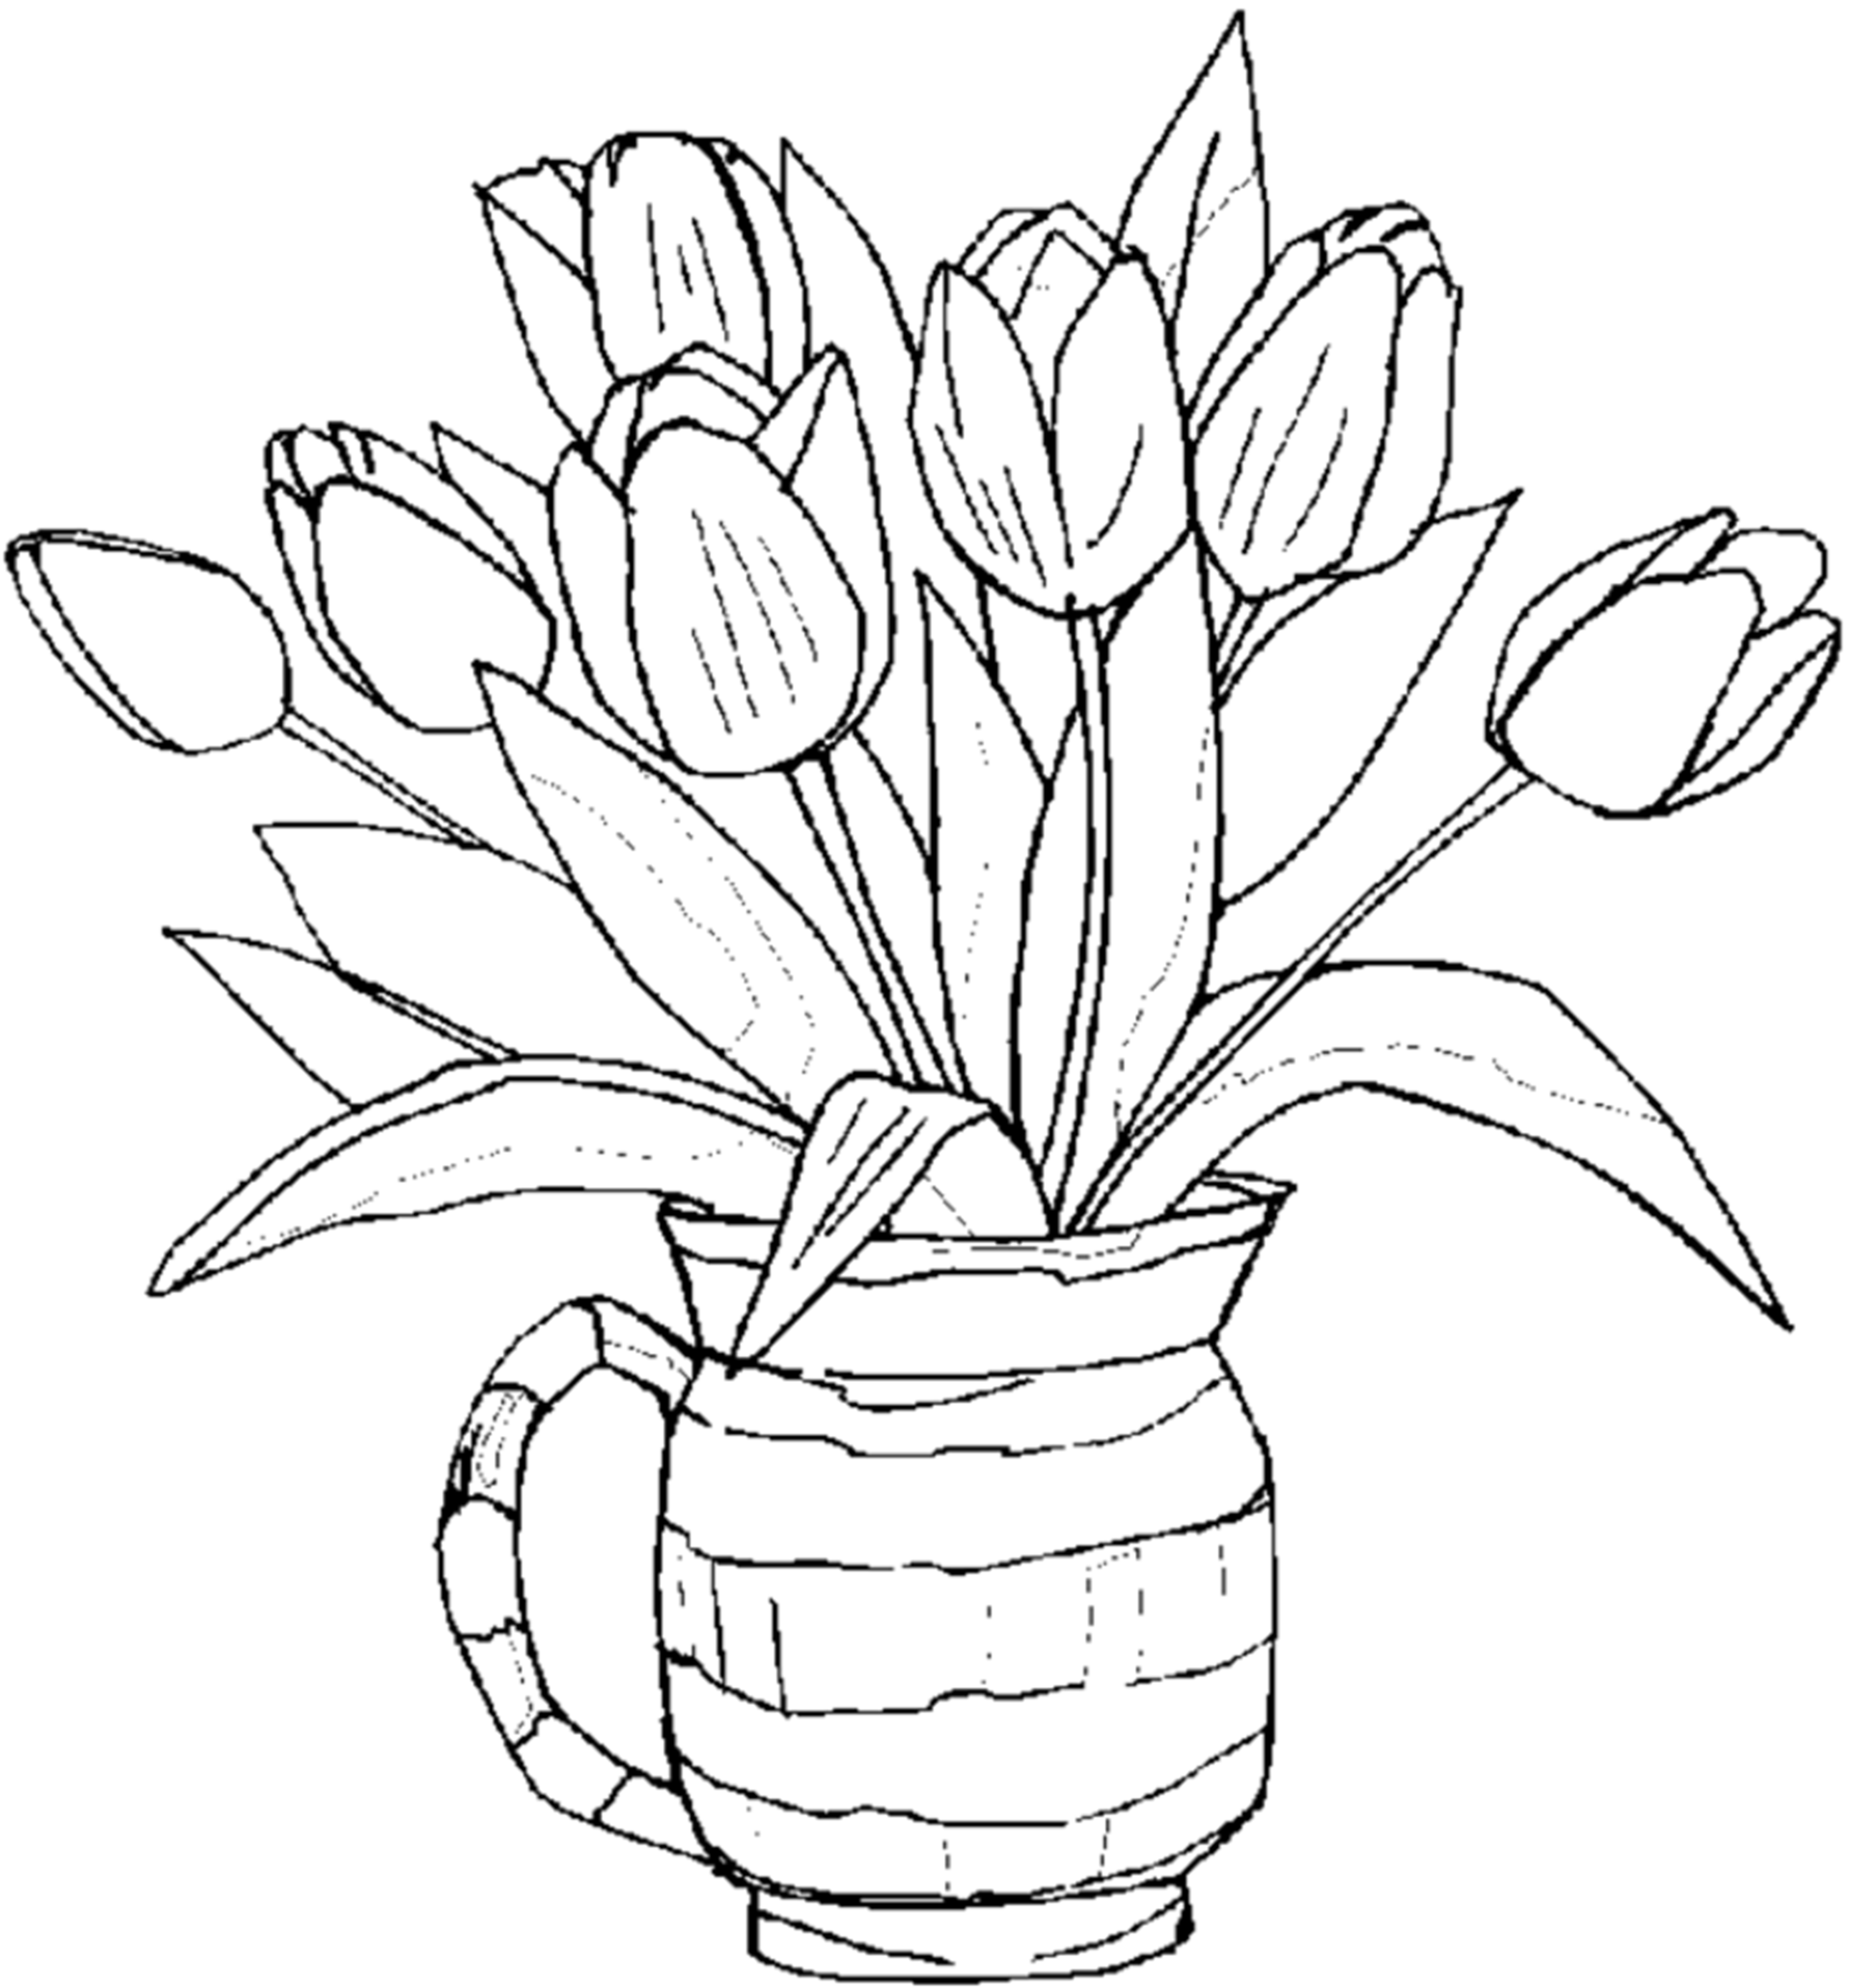 pictures of flowers to color free printables free easy to print flower coloring pages tulamama pictures flowers printables to free color of